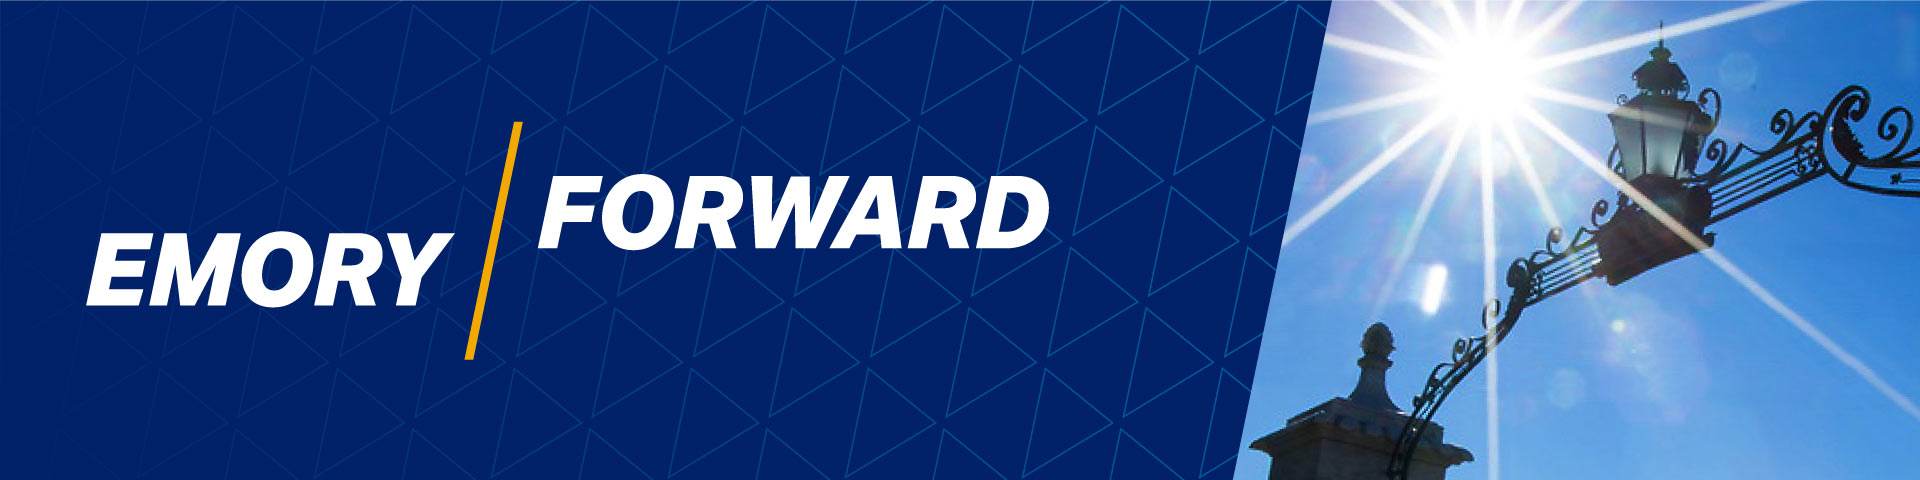 Emory-Forward-header6.jpg